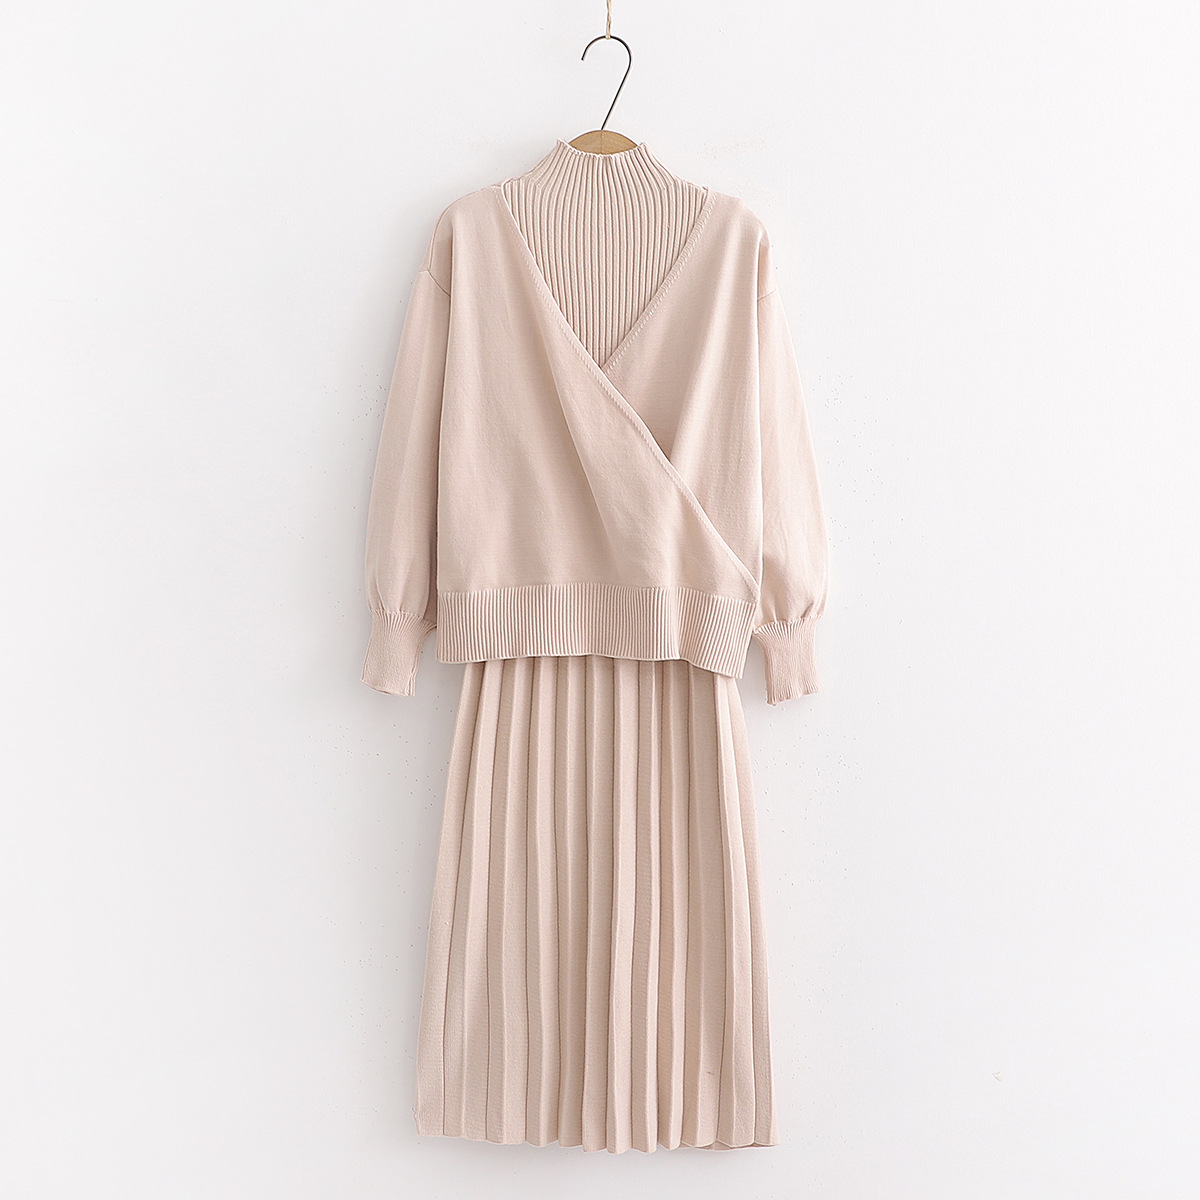 Korean-style Autumn New Style Small High Collar Pullover Knitted Ultra-stretch Sleeveless Pleated Dress Two-Piece Set S28176